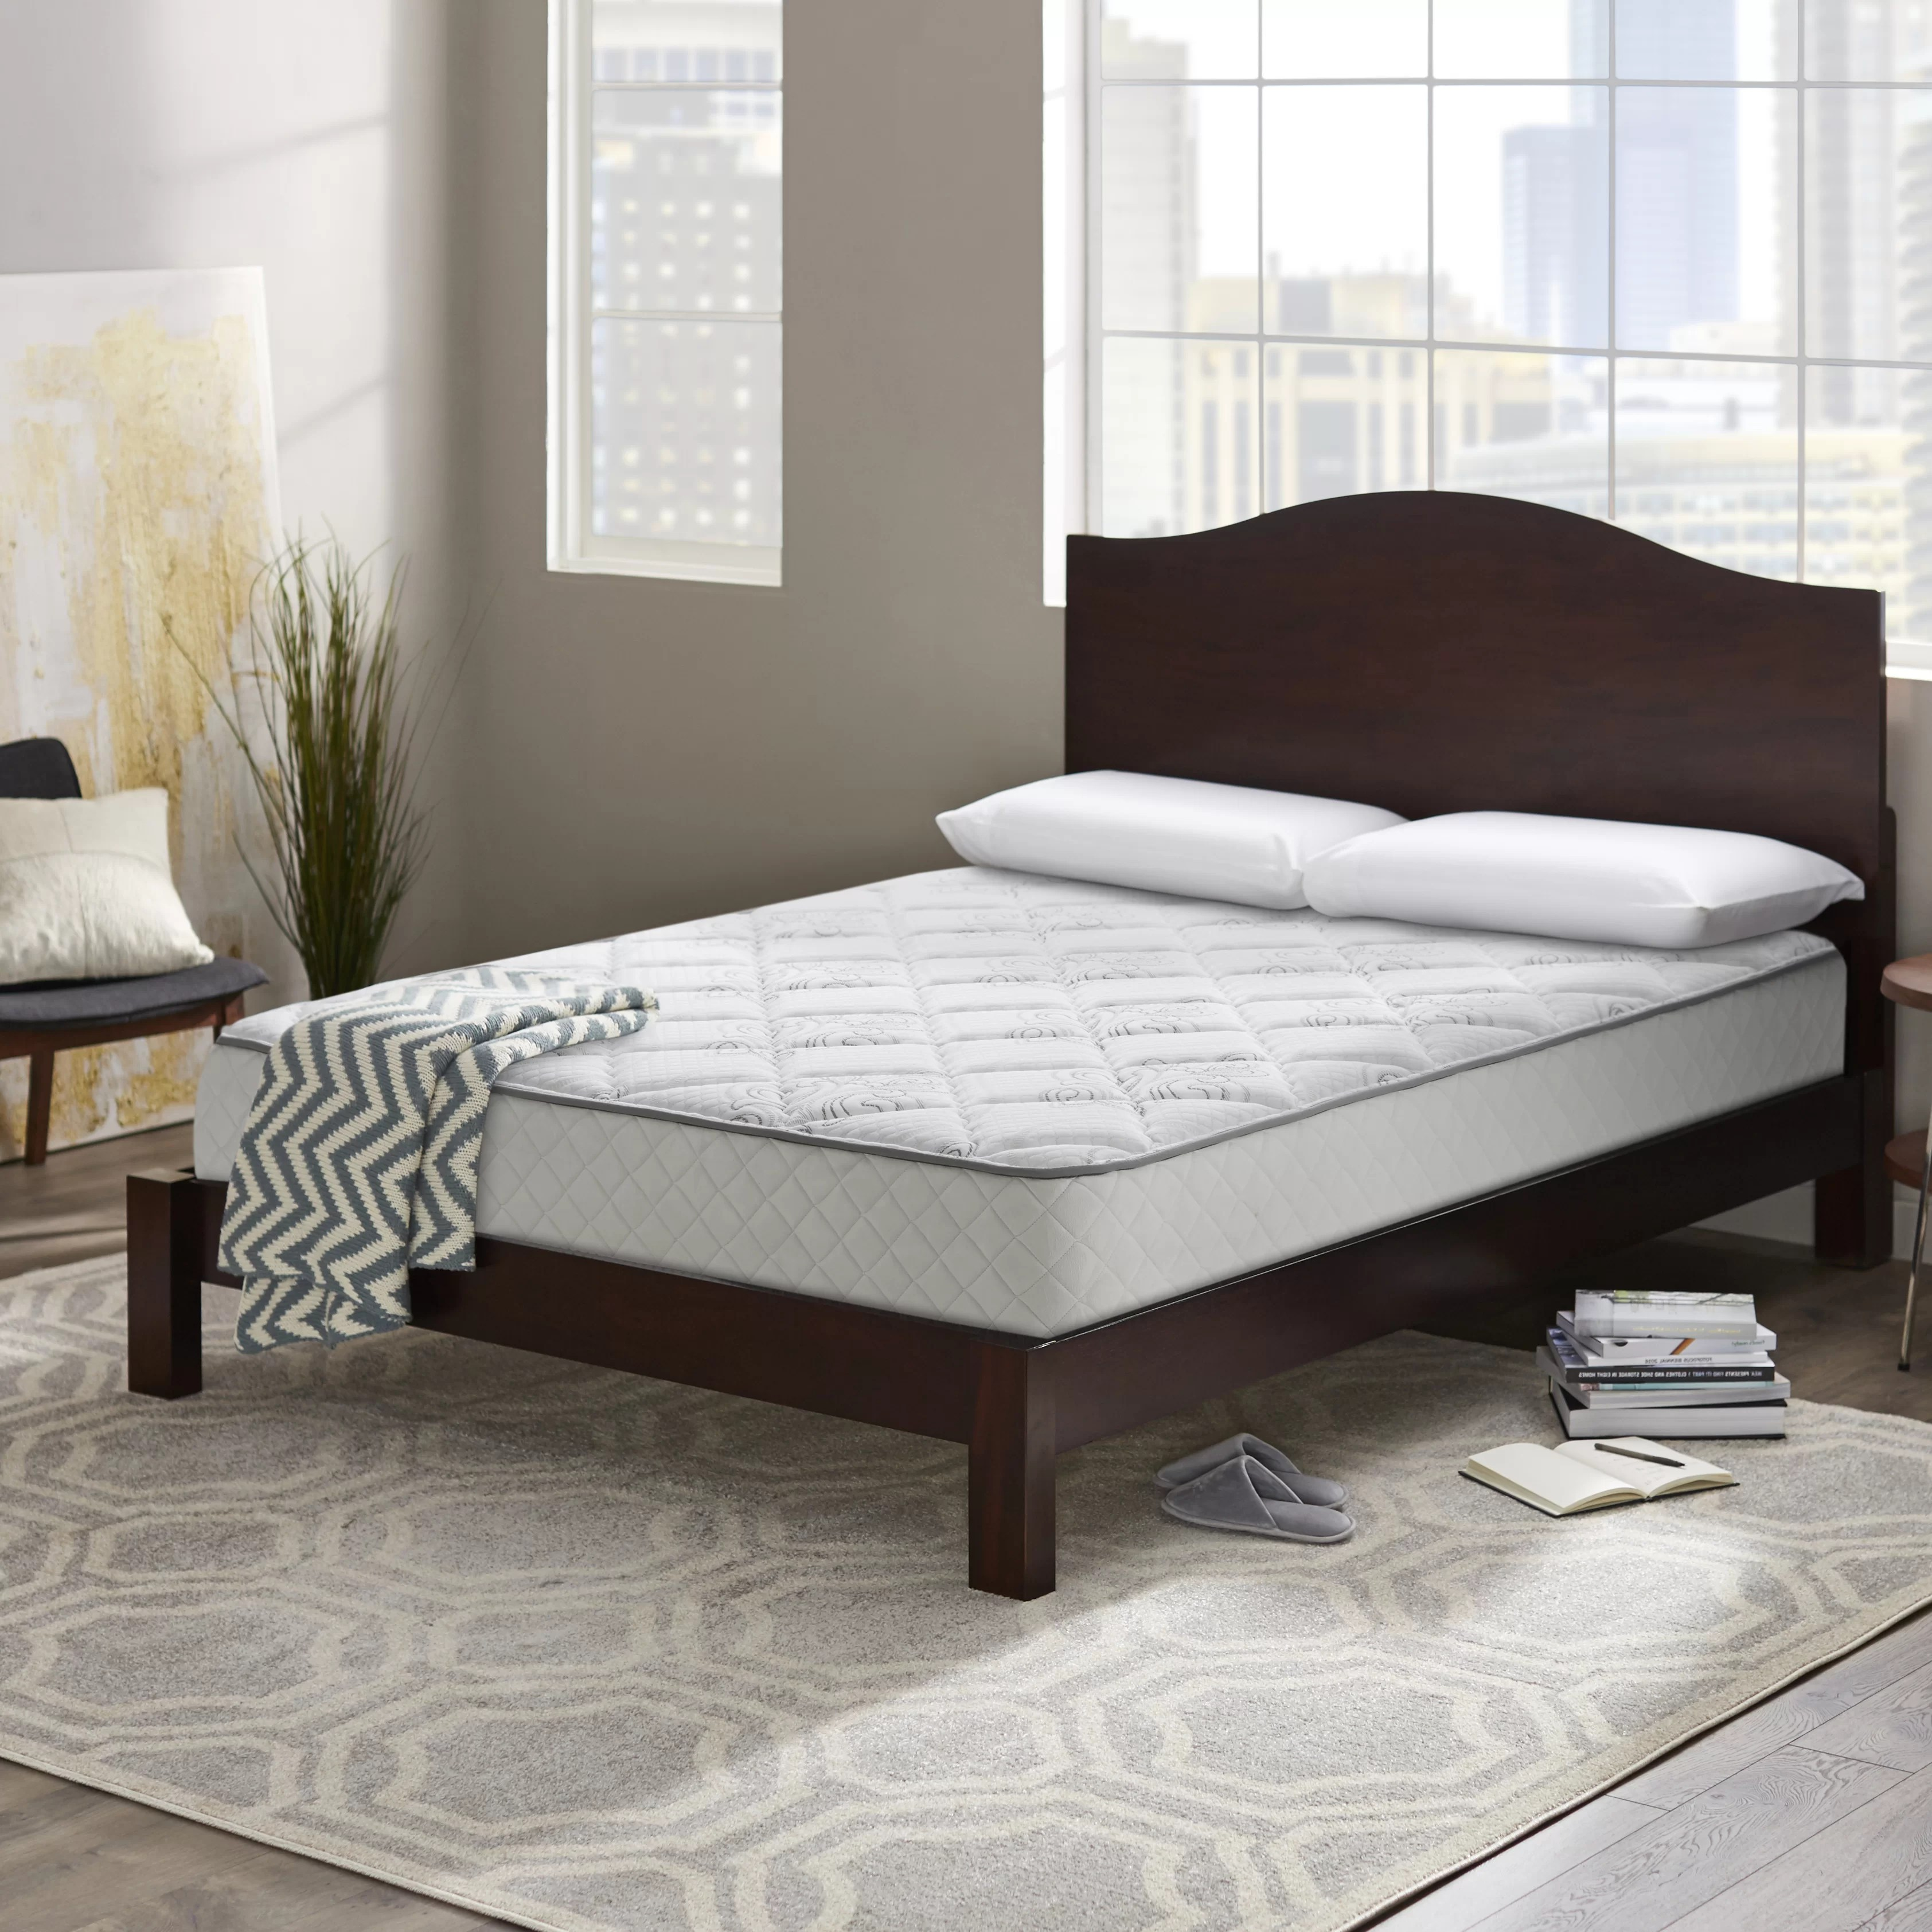 Sealy Posturepedic Backcare Elite Mattress Wayfair Sleep 10